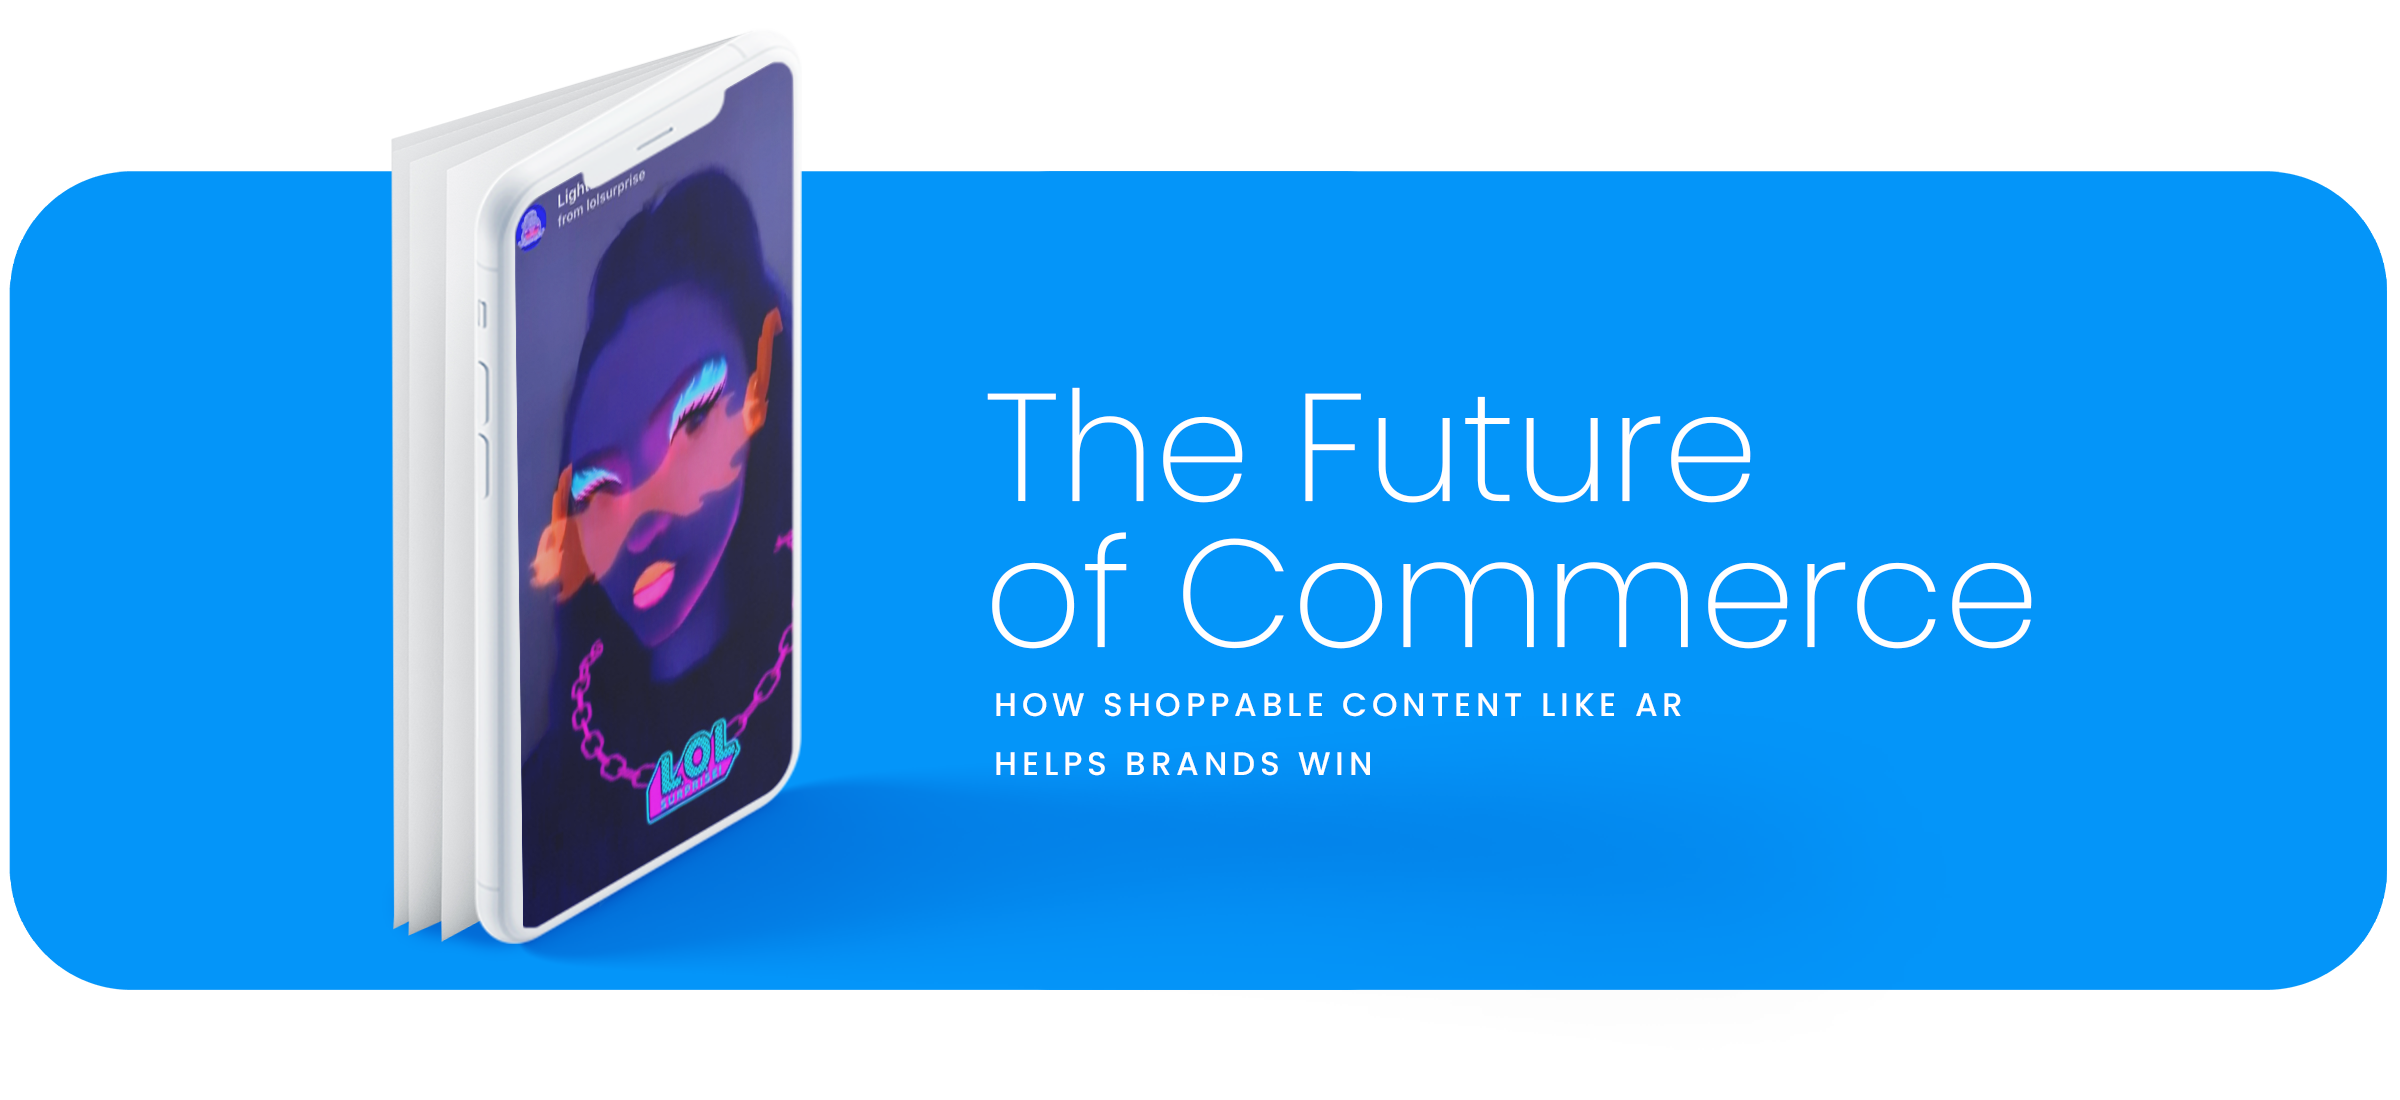 STATE-OF-AR-PROMO-LANDING-PAGE